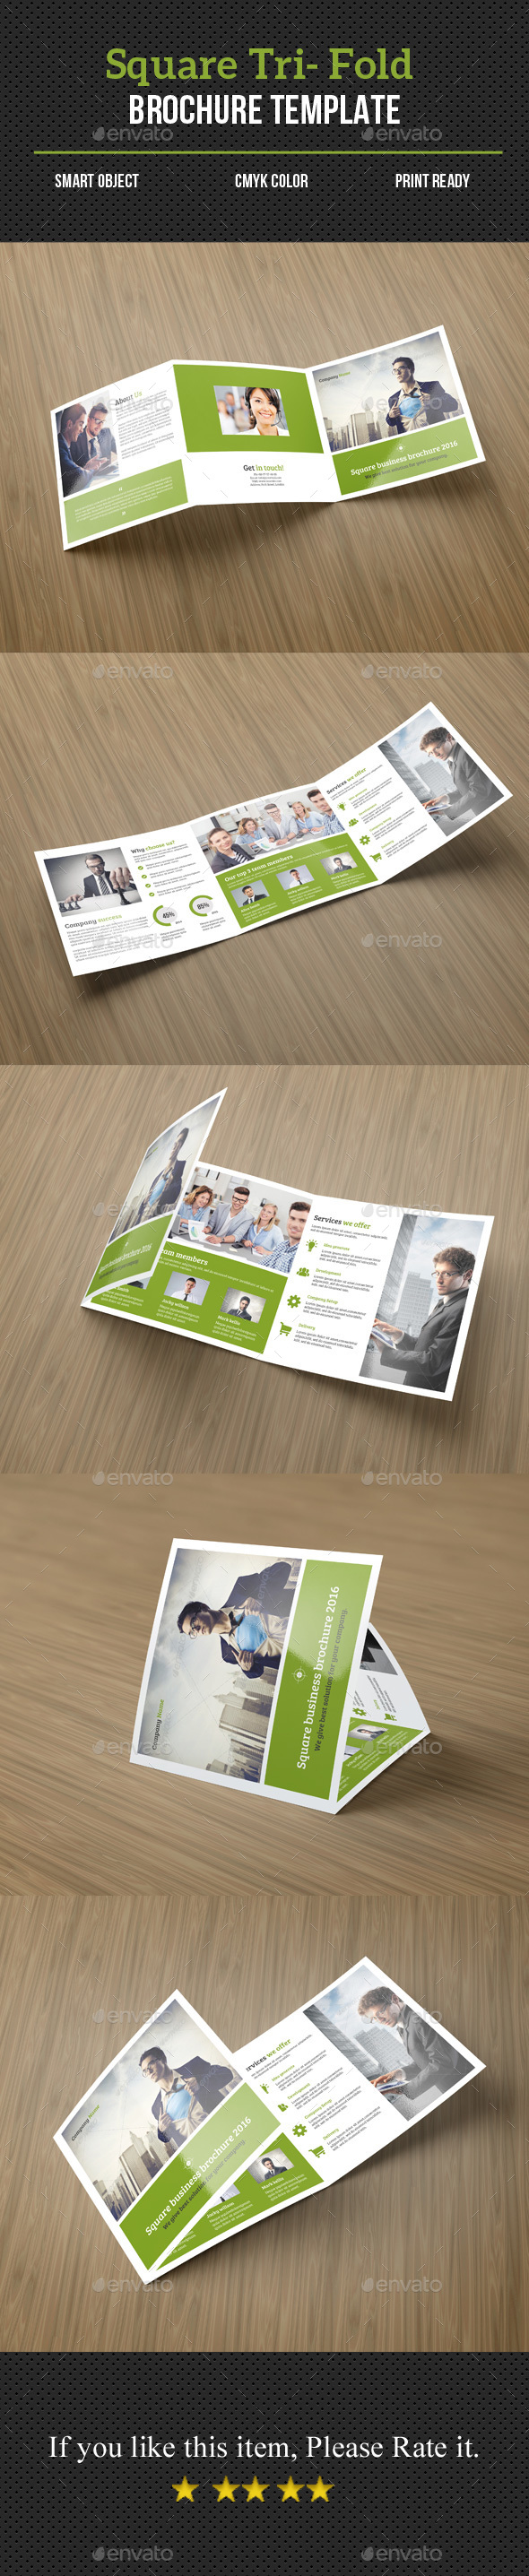 Square Tri- fold Corporate Brochure - Corporate Brochures